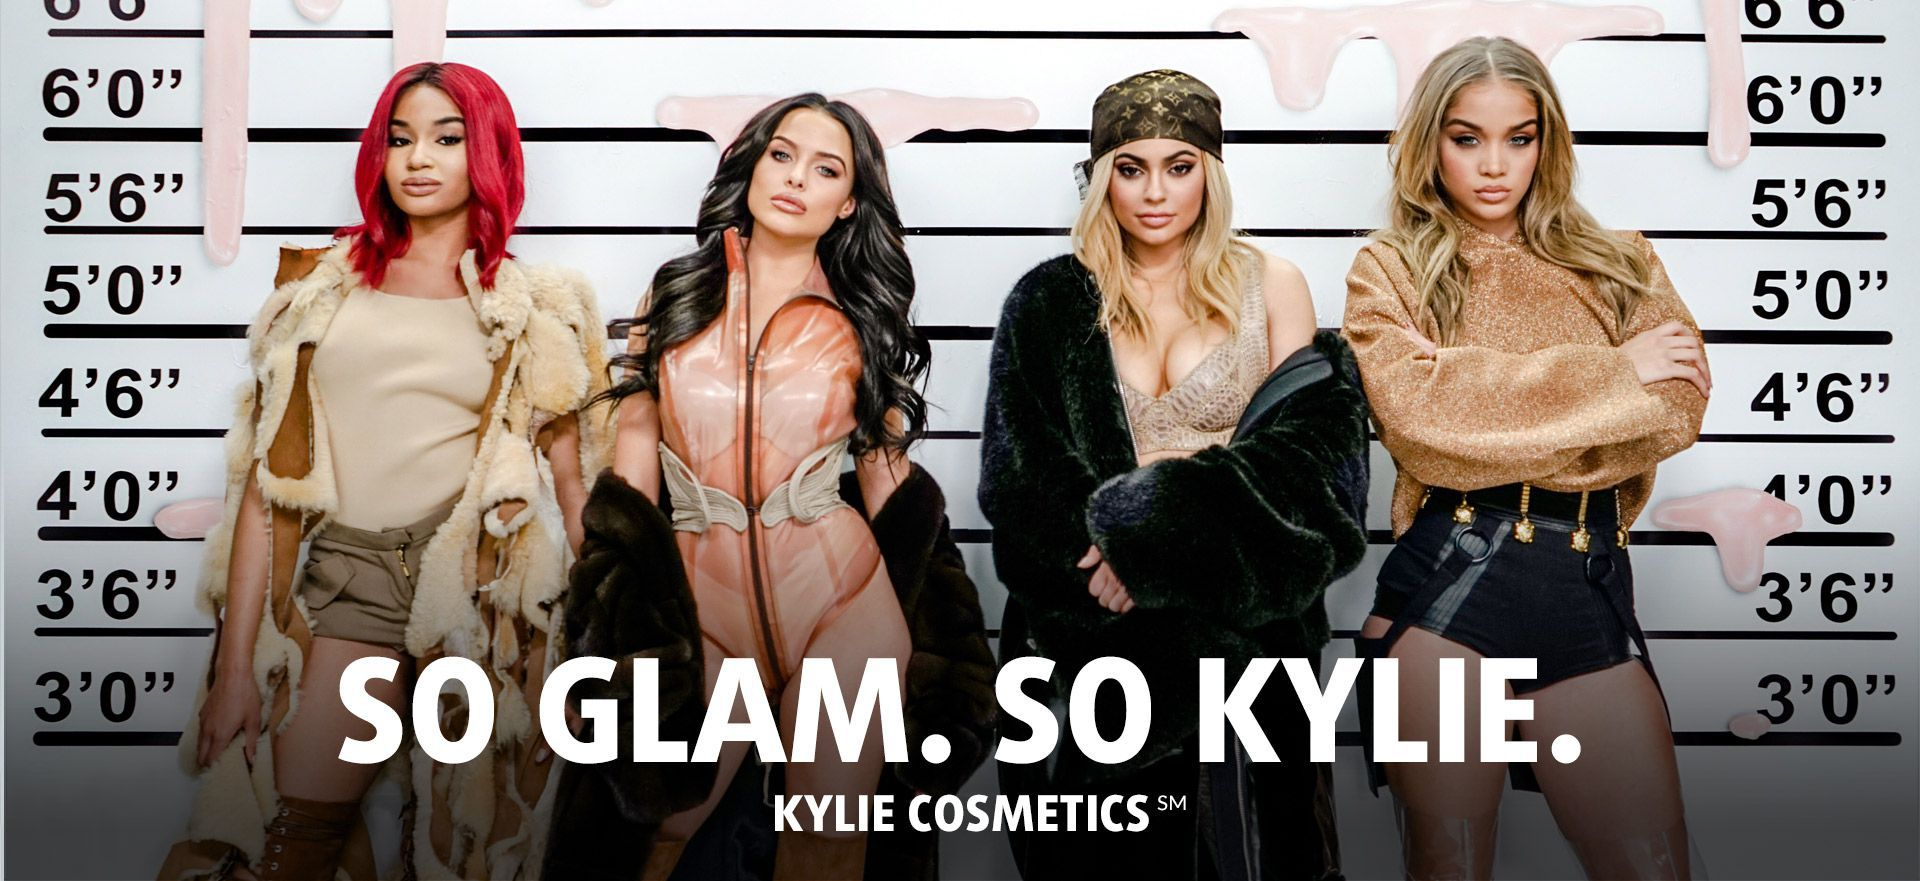 kylie-glosses